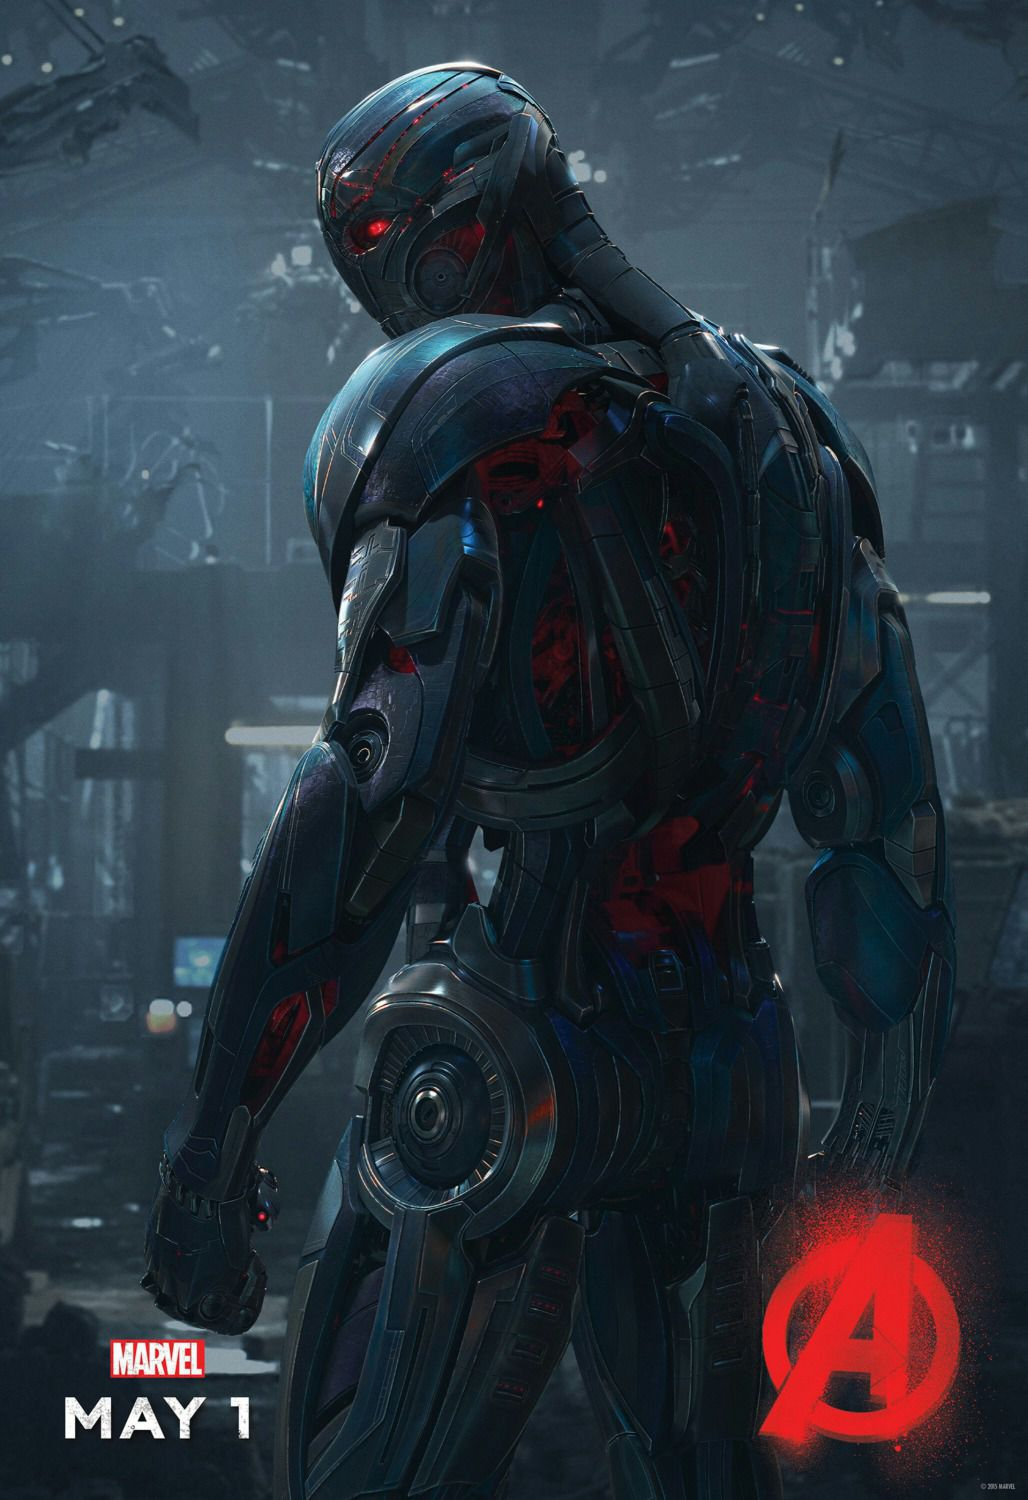 Avengers 2 - Age of Ultron . poster - Ultron